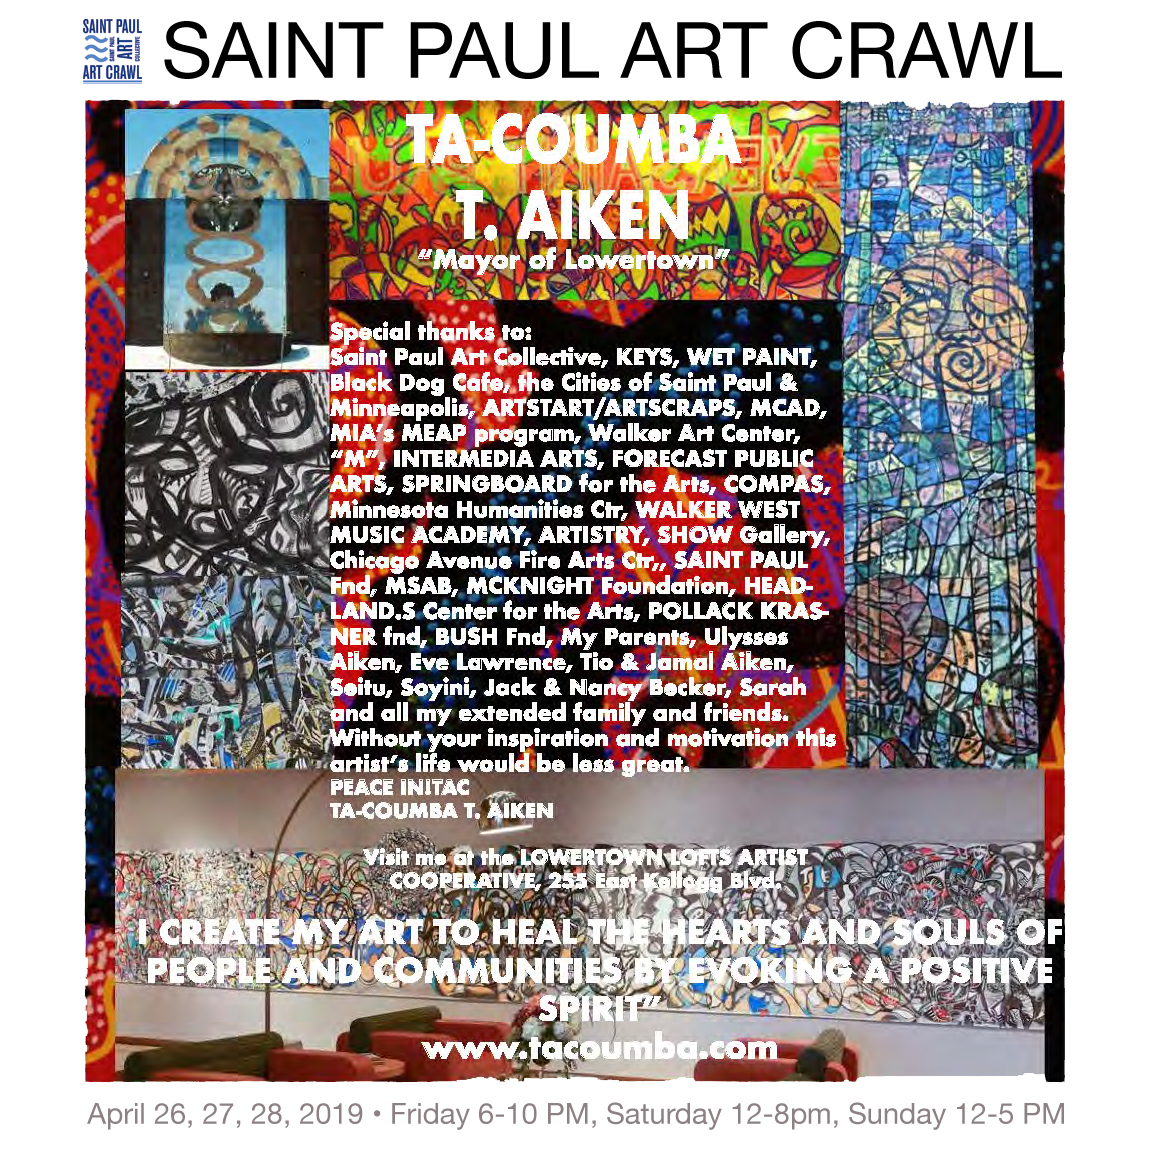 Visit  Ta-coumba  at the Saint Paul Art Crawl on the Third Floor of the Co-op! You can see who else is participating and what else is happening at Lowertown Lofts Artist Cooperative by  clicking here .